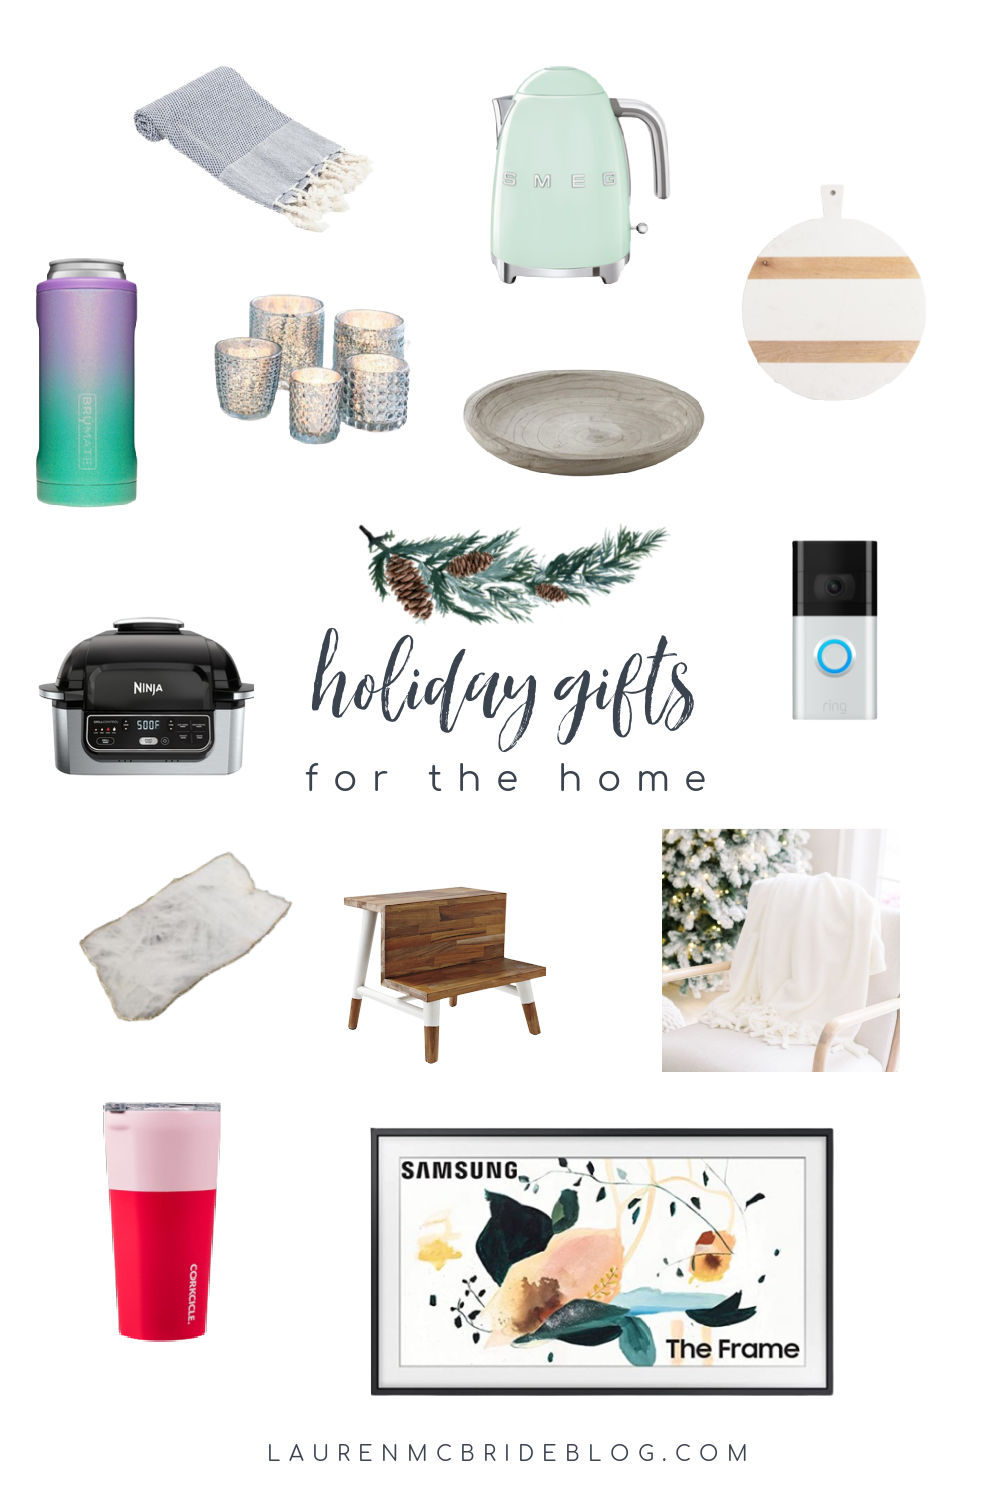 Connecticut life and style blogger Lauren McBride shares holiday home gifts for the 2020 holiday season.